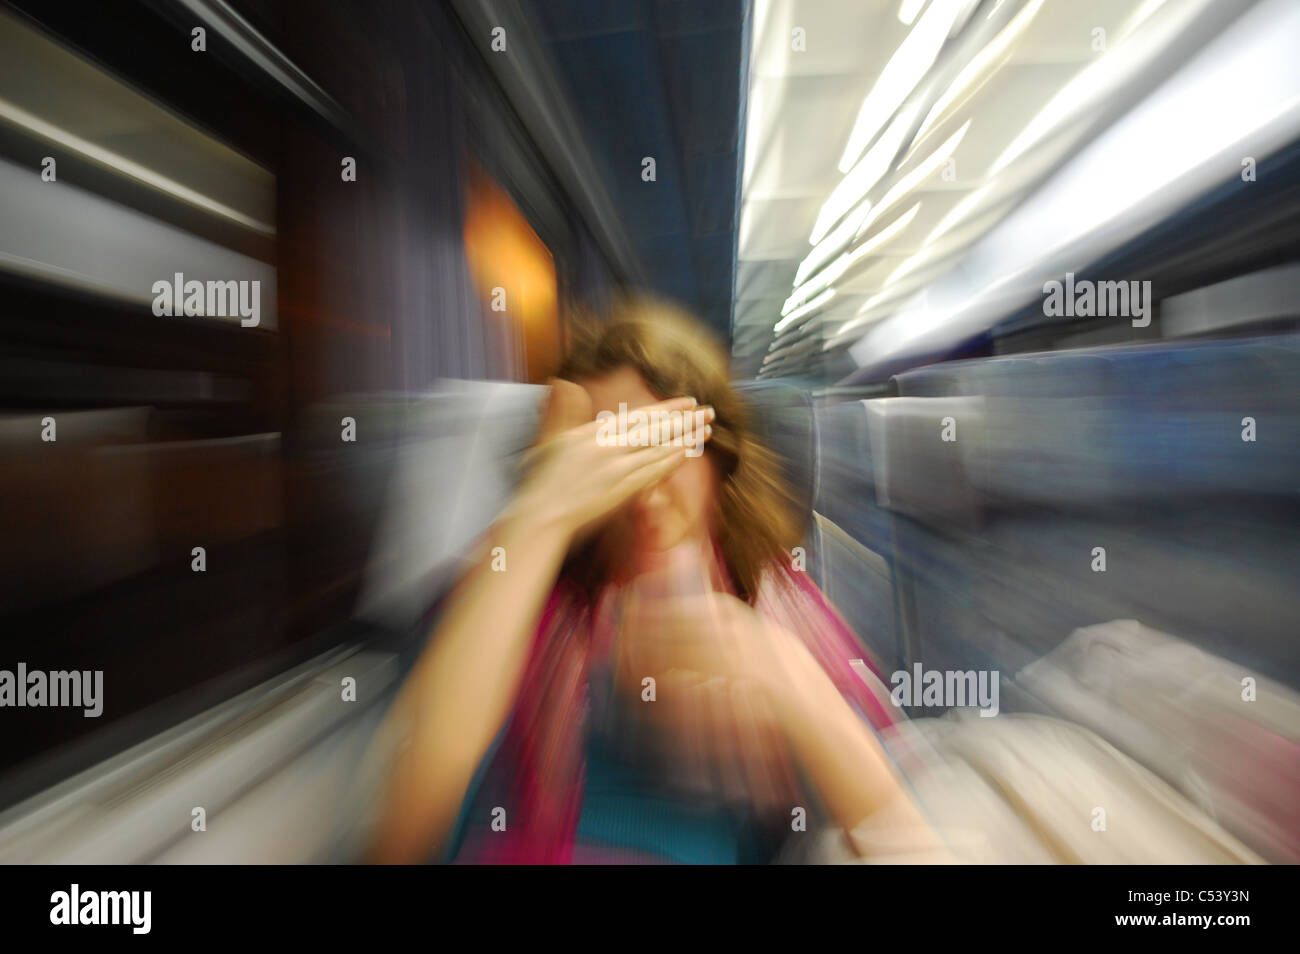 Zoom motion blur effect on girl hiding her face. Suggests shyness, embarrassment, shame paranoia concepts - Stock Image